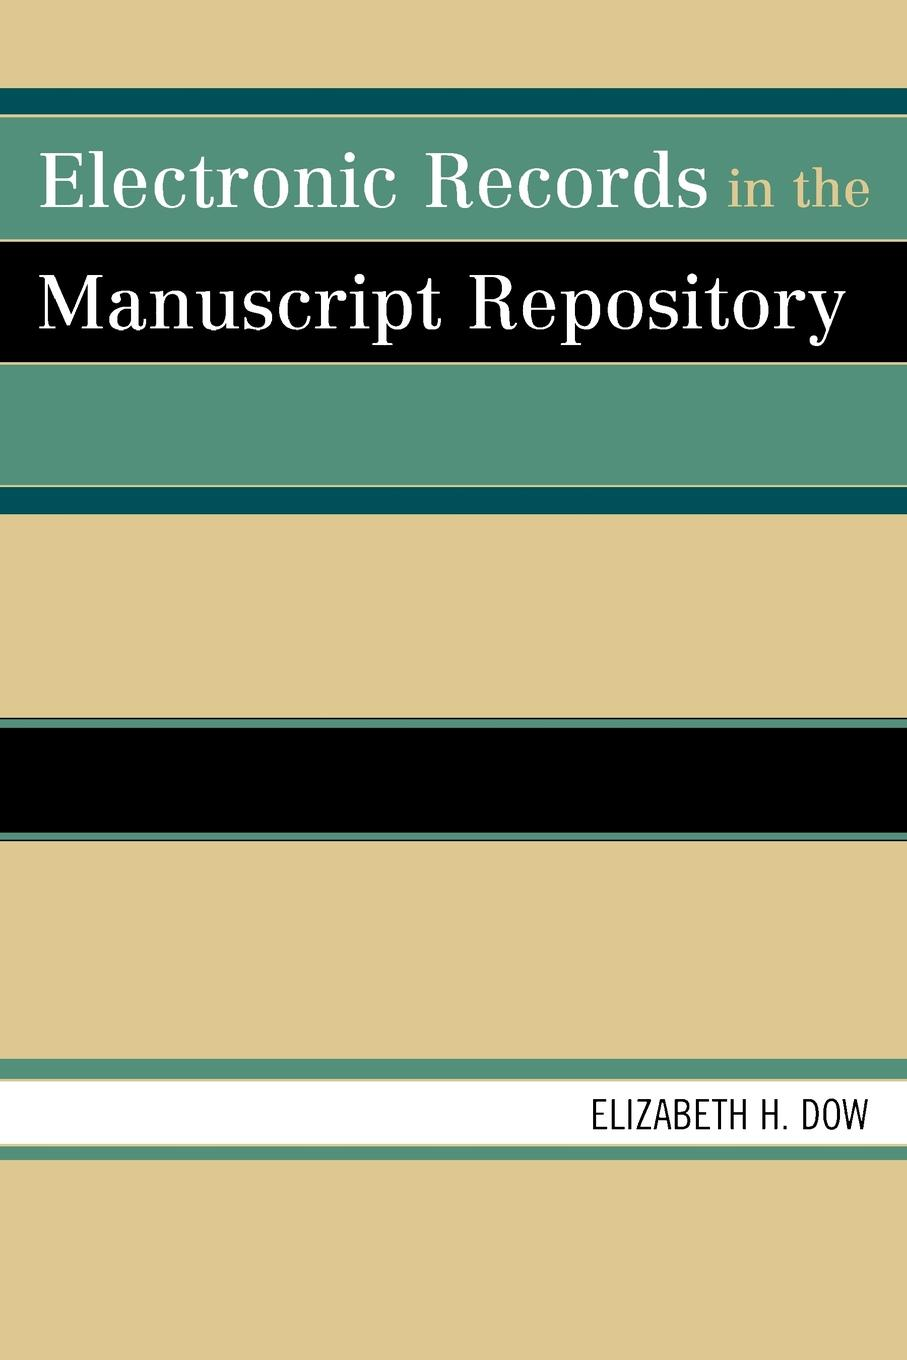 Electronic Records in the Manuscript Repository By: Elizabeth H. Dow